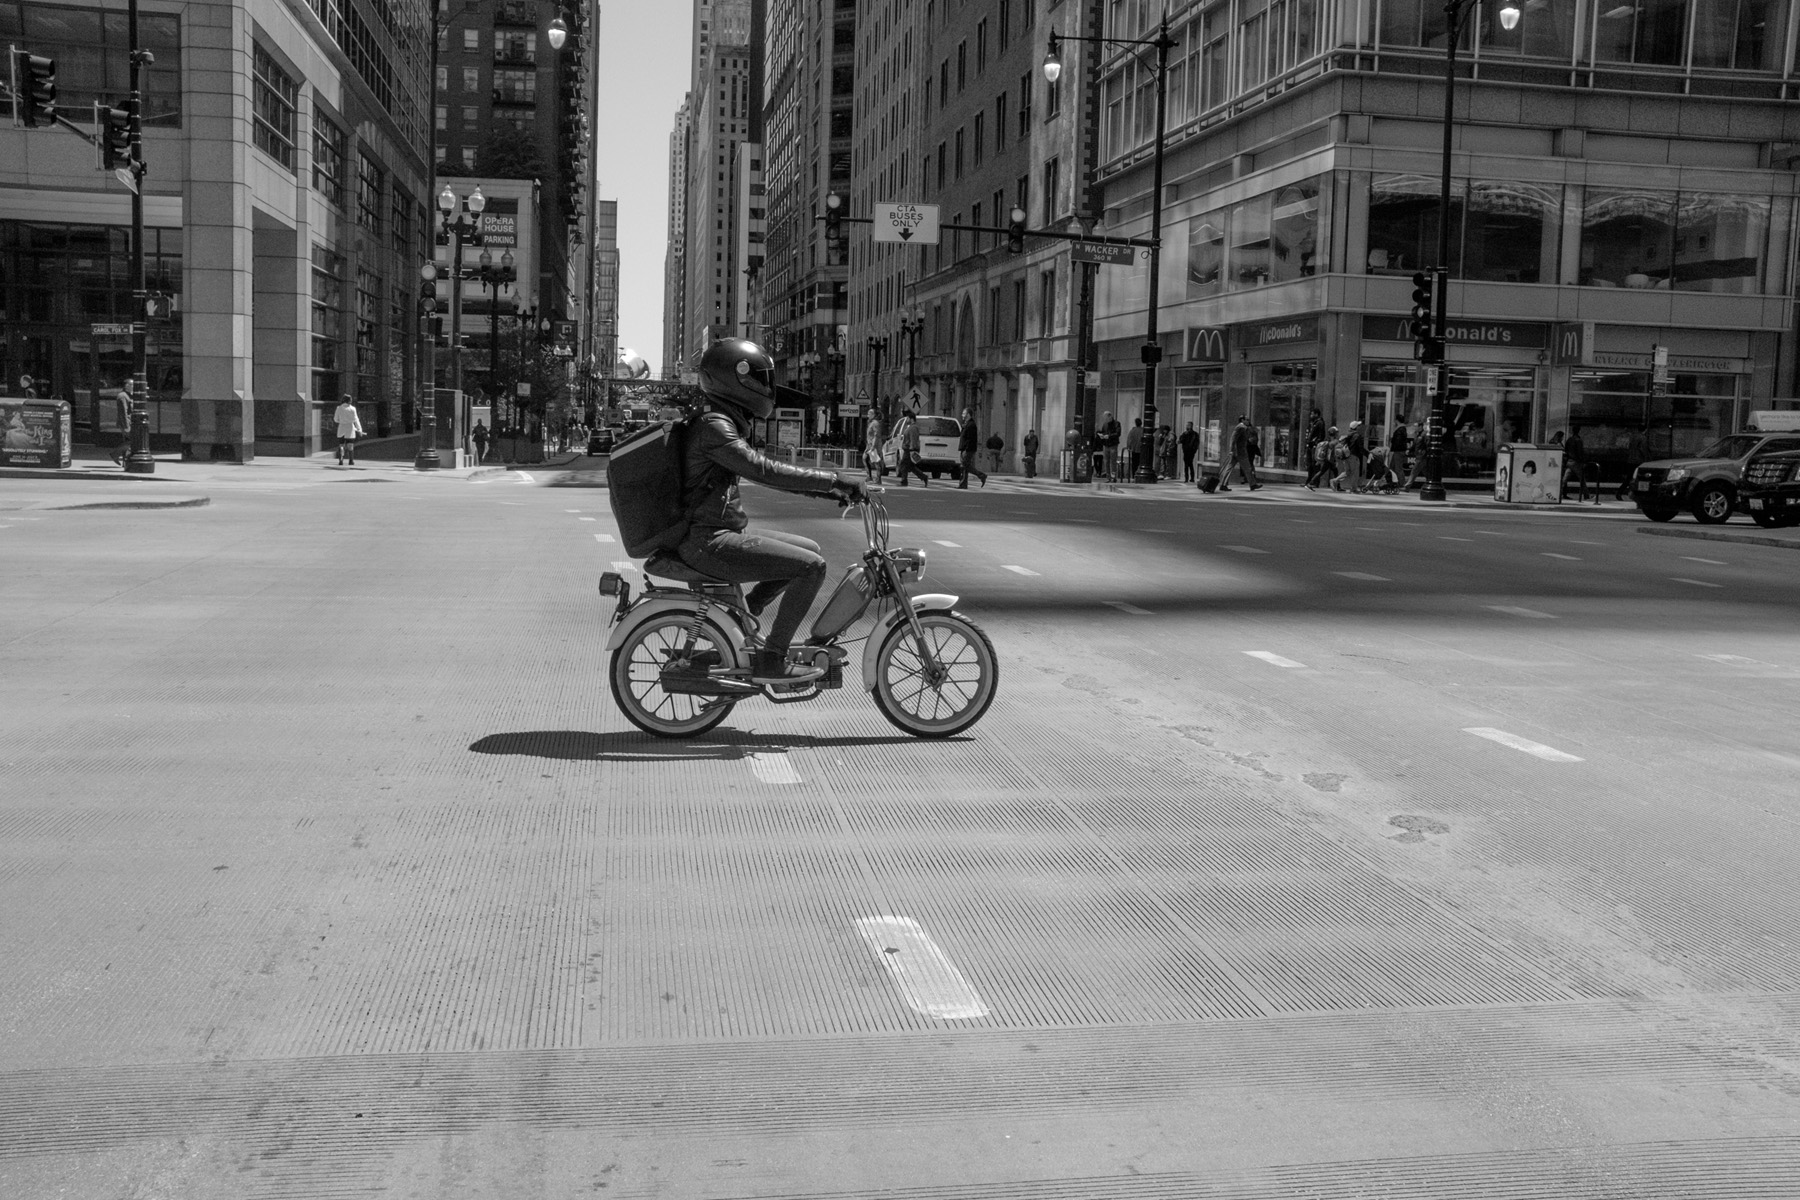 a motorcycle helmet wearing commuter riding a moped in downtown chicago.